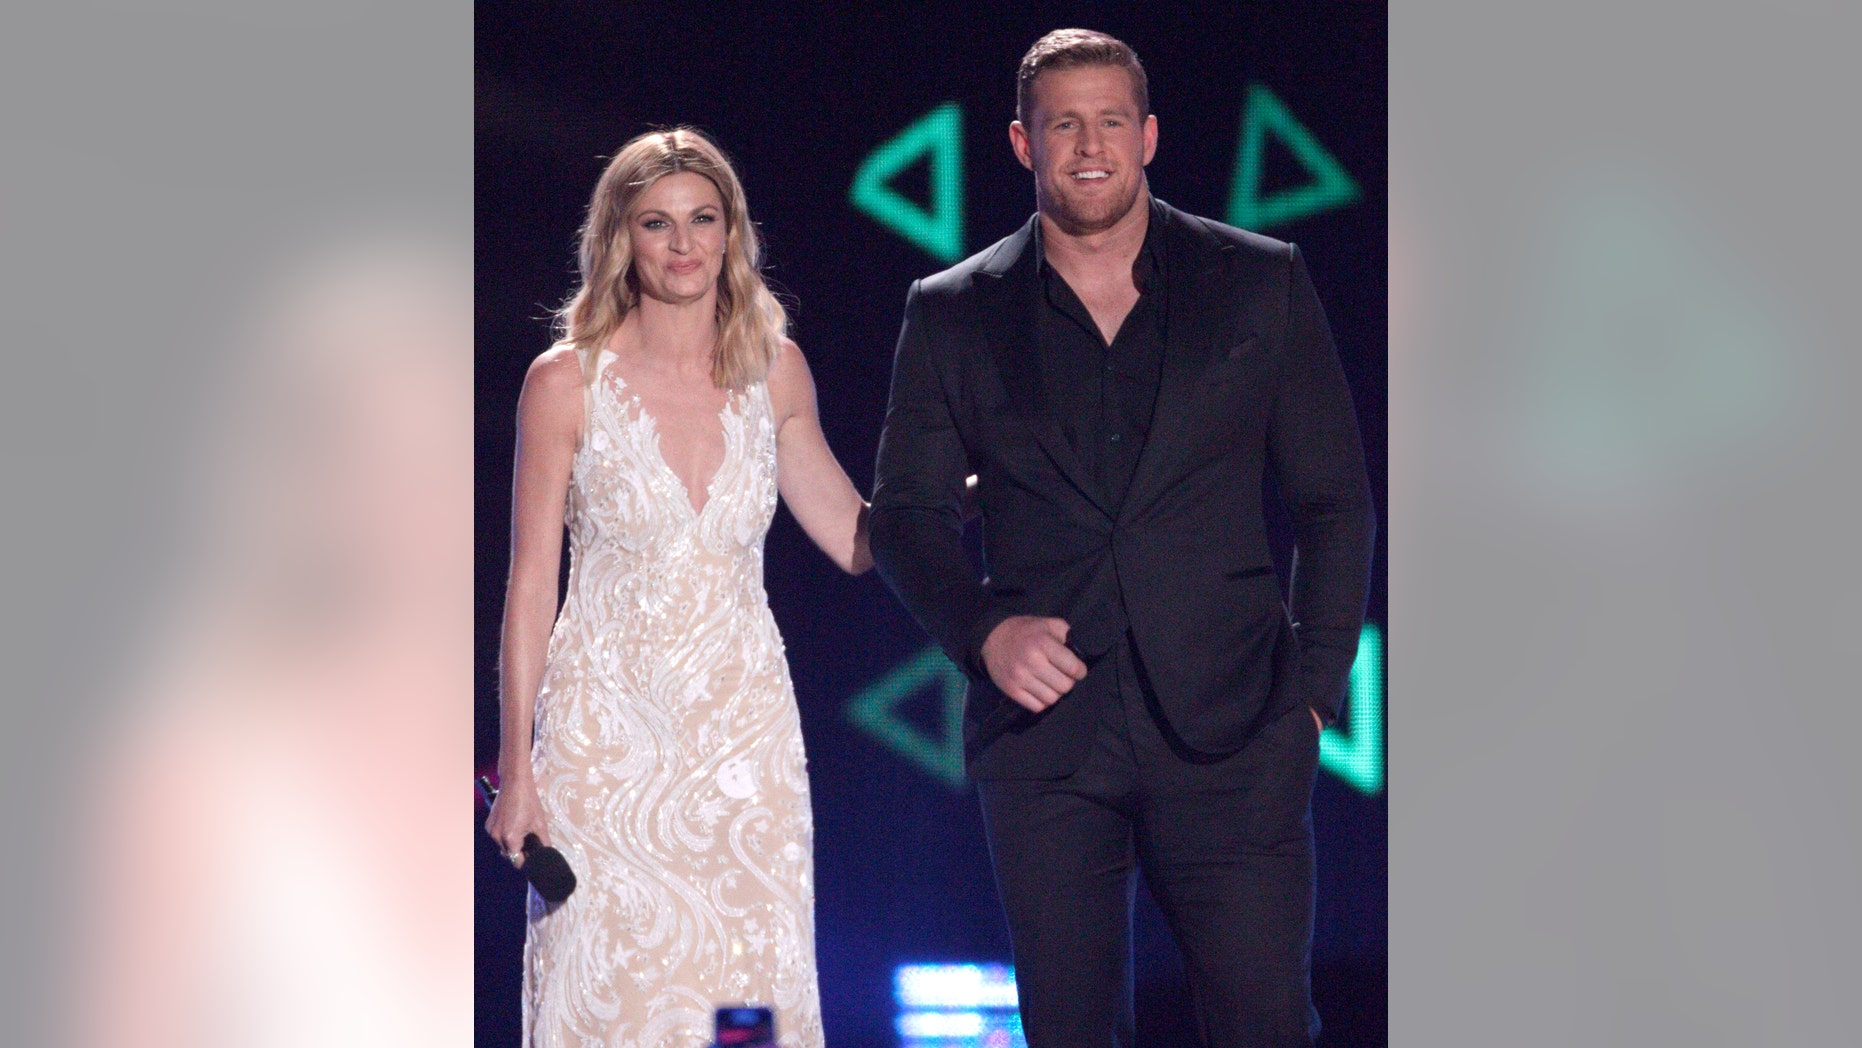 Host Erin Andrews, left,  and J.J. Watt appear on stage at the CMT Music Awards at the Bridgestone Arena on Wednesday, June 8, 2016, in Nashville, Tenn. (Photo by Wade Payne/Invision/AP)